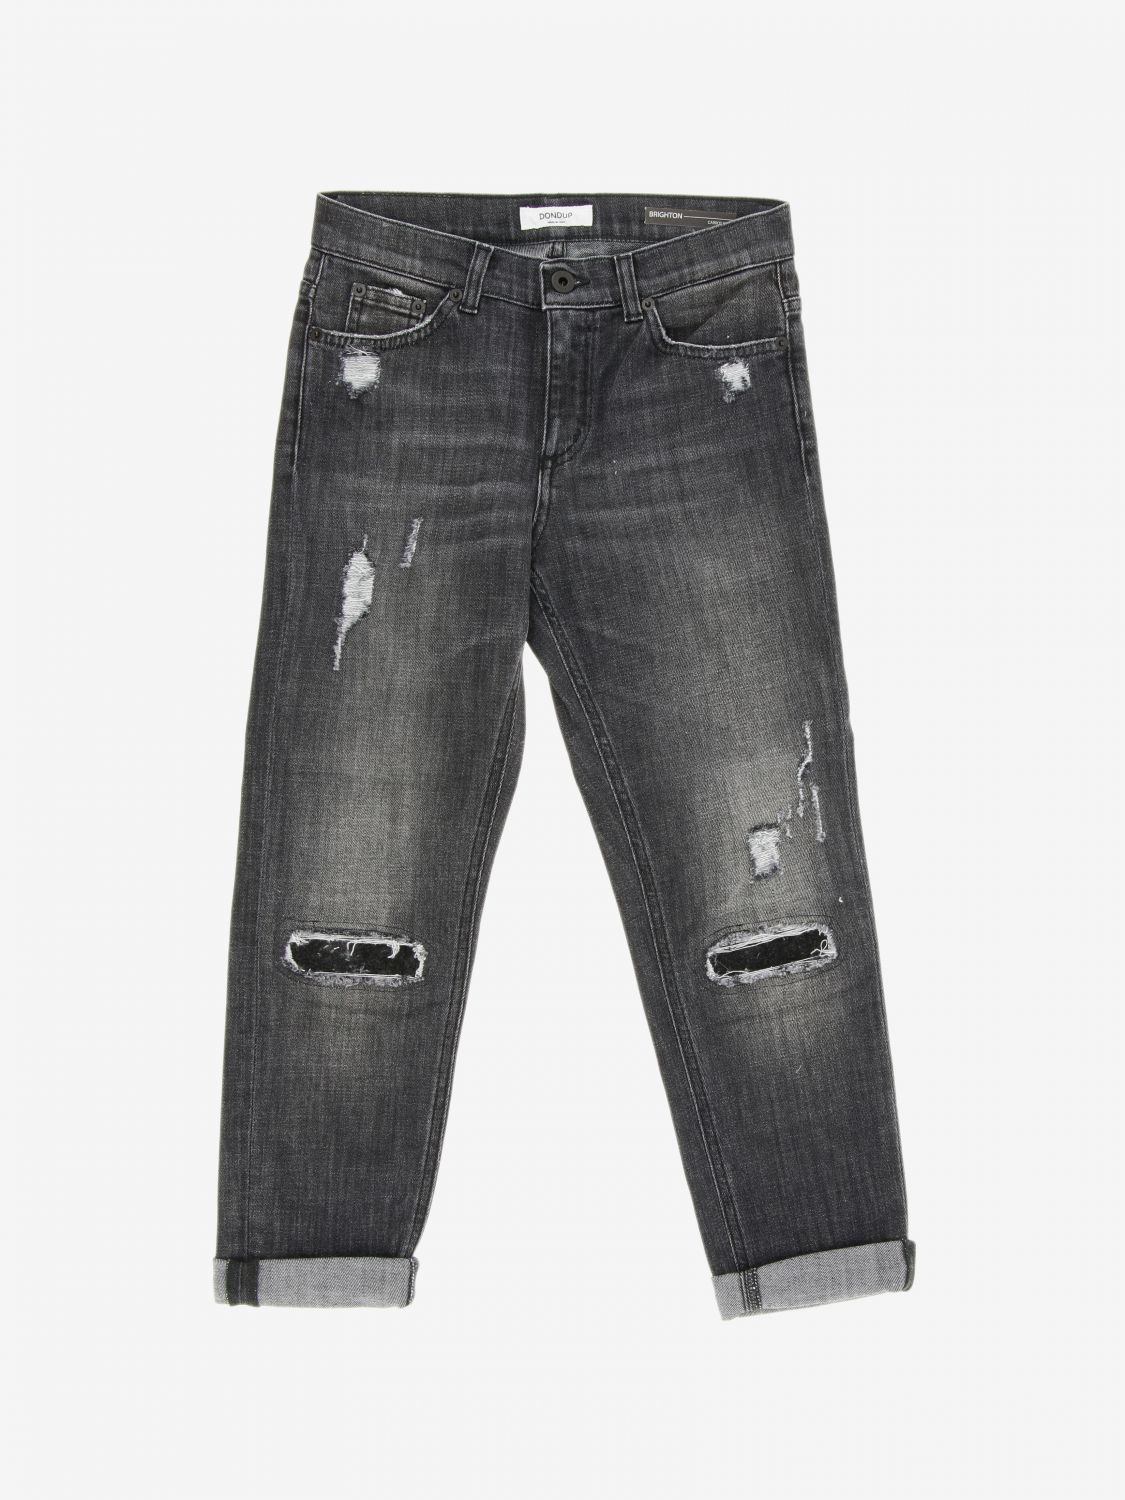 Jeans Dondup: Jeans Brighton Dondup carrots fit con rotture nero 1